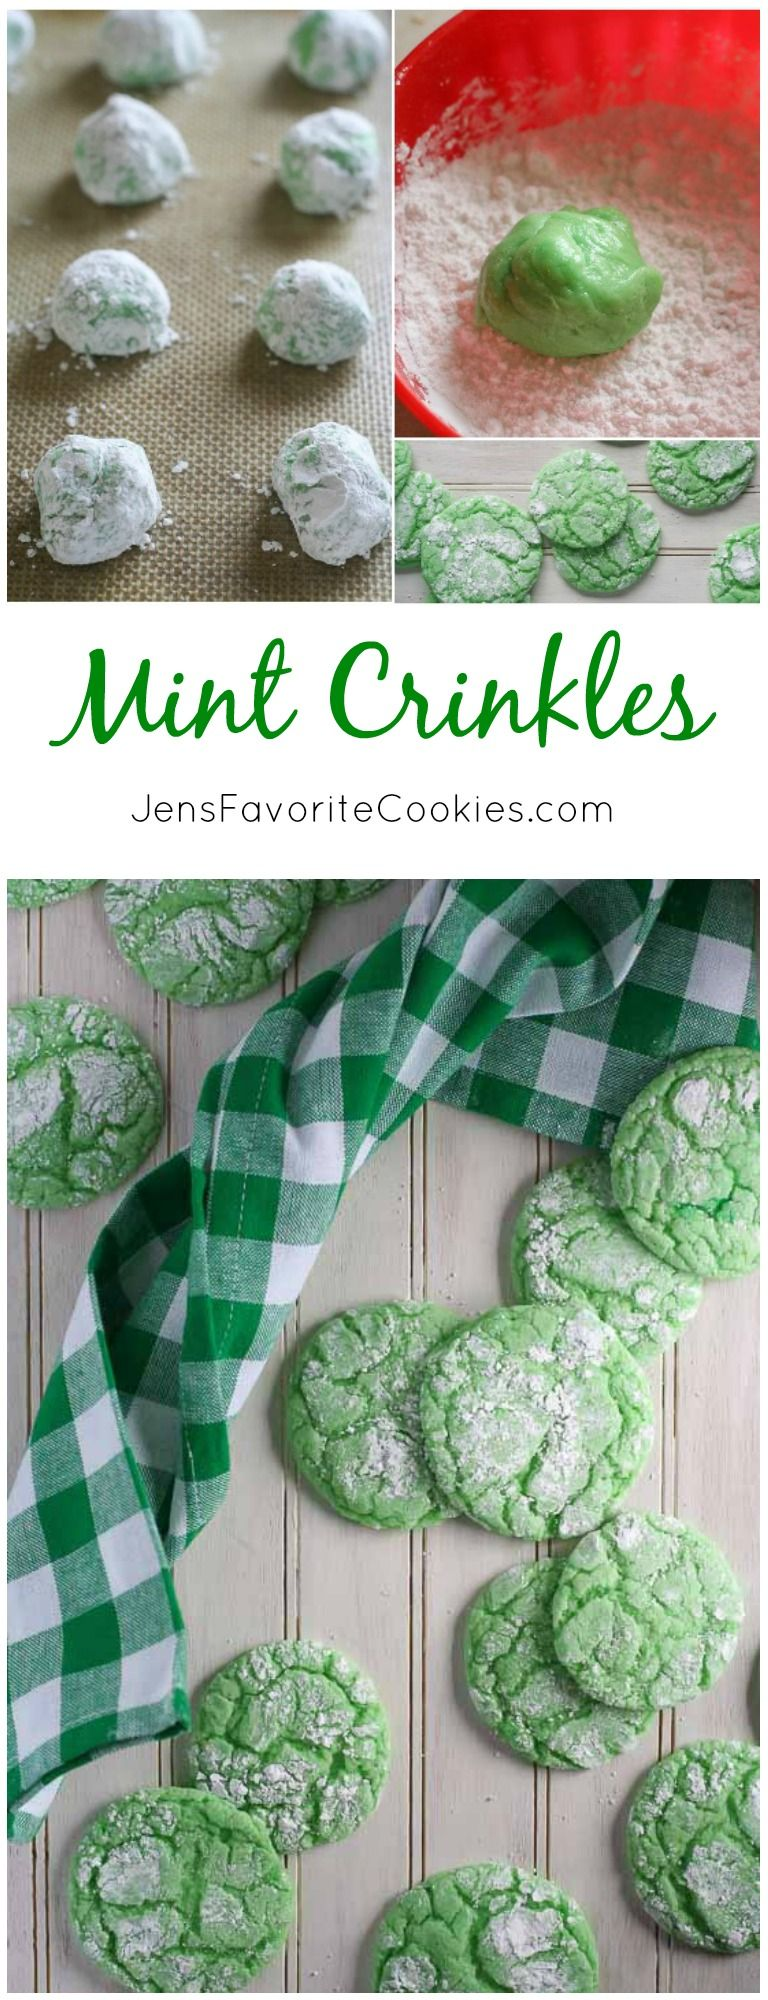 Mint Crinkles from JensFavoriteCookies.com - a fun and easy way to customize your cake mix cookies!  Great for St. Patrick's Day.